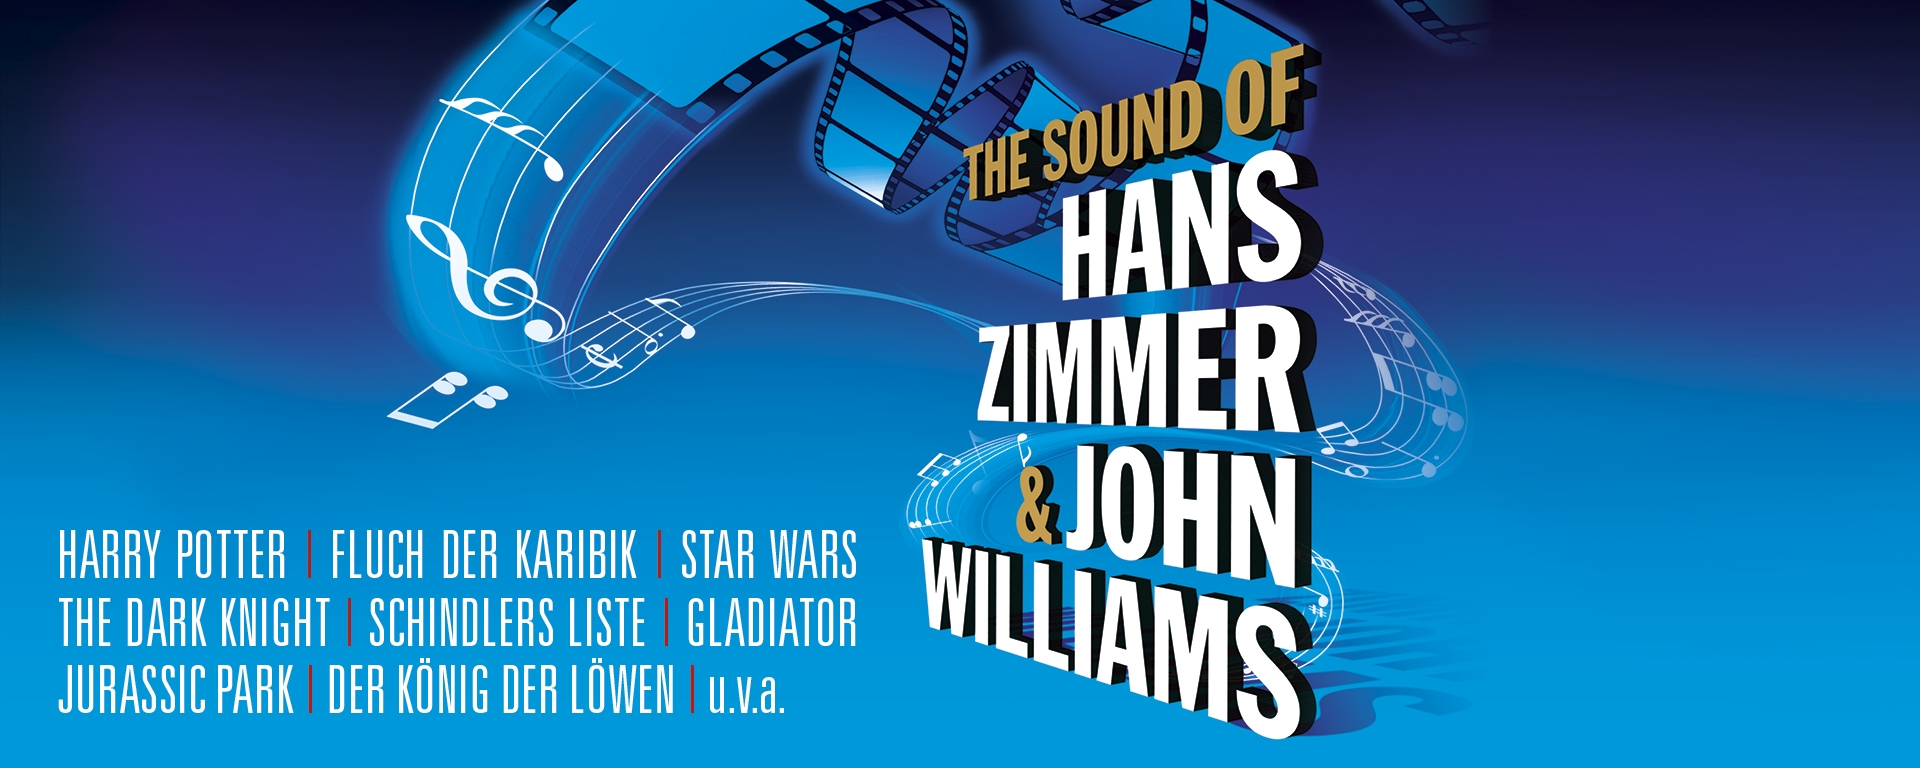 The Sound of Hans Zimmer & John Williams